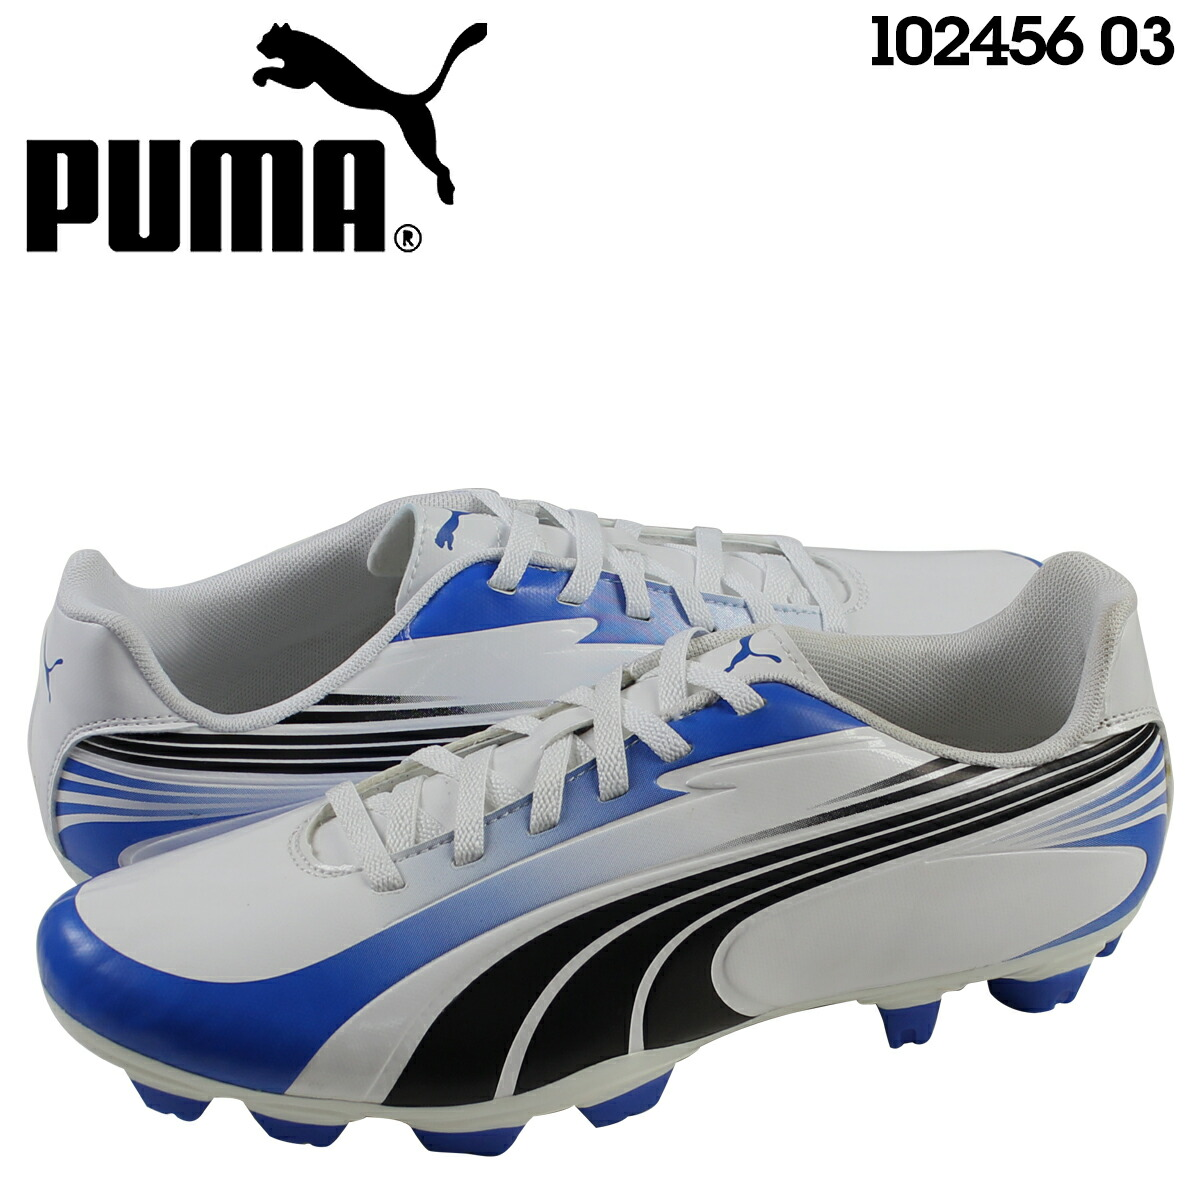 marketing product puma Marketing strategies of puma outstanding performances of puma athletes and teams have strongly influenced international sports through innovative puma products and creative marketing initiatives for more than 60 years - marketing strategies of puma introduction.